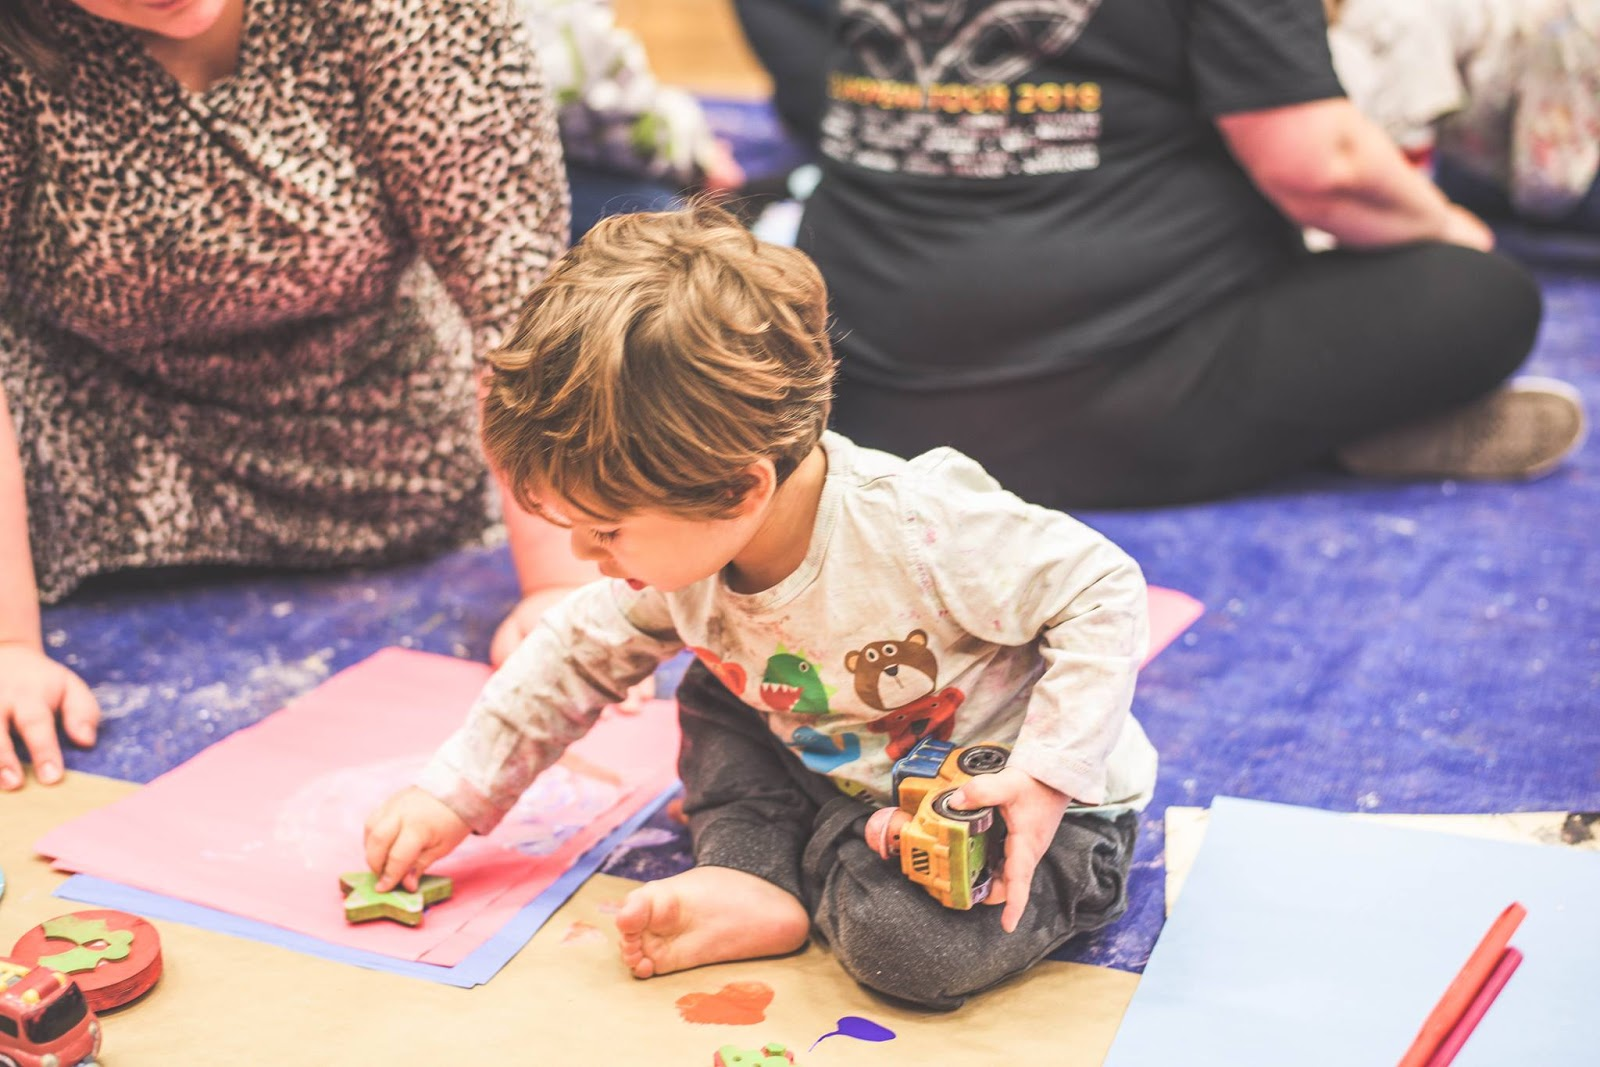 Gateshead ALive - 10 Events For Tweens, Teens & Little Ones This Spring  - Artventurers Easter party